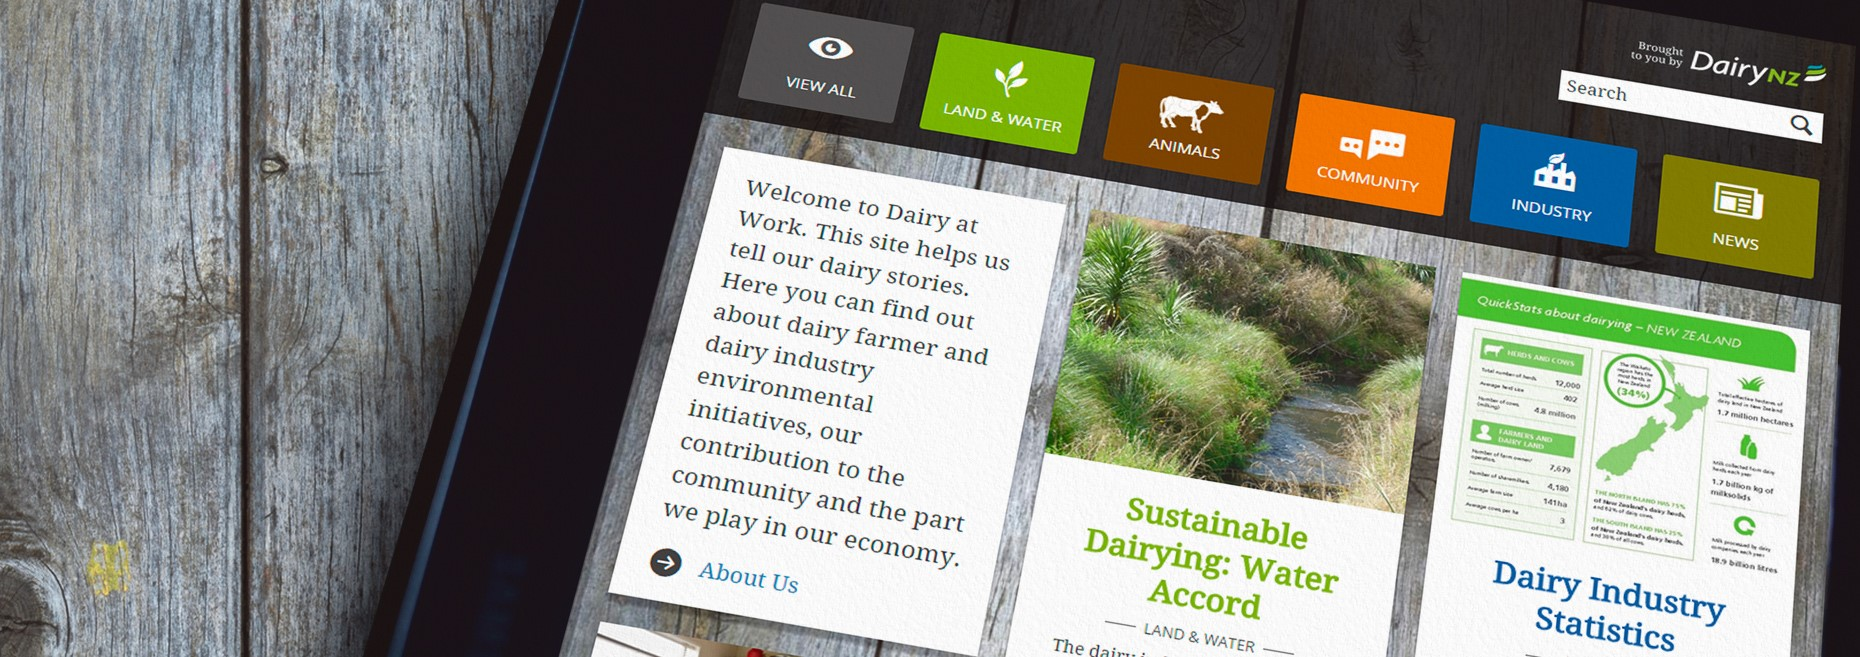 DairyNZ Dairy At Work homepage on a tablet